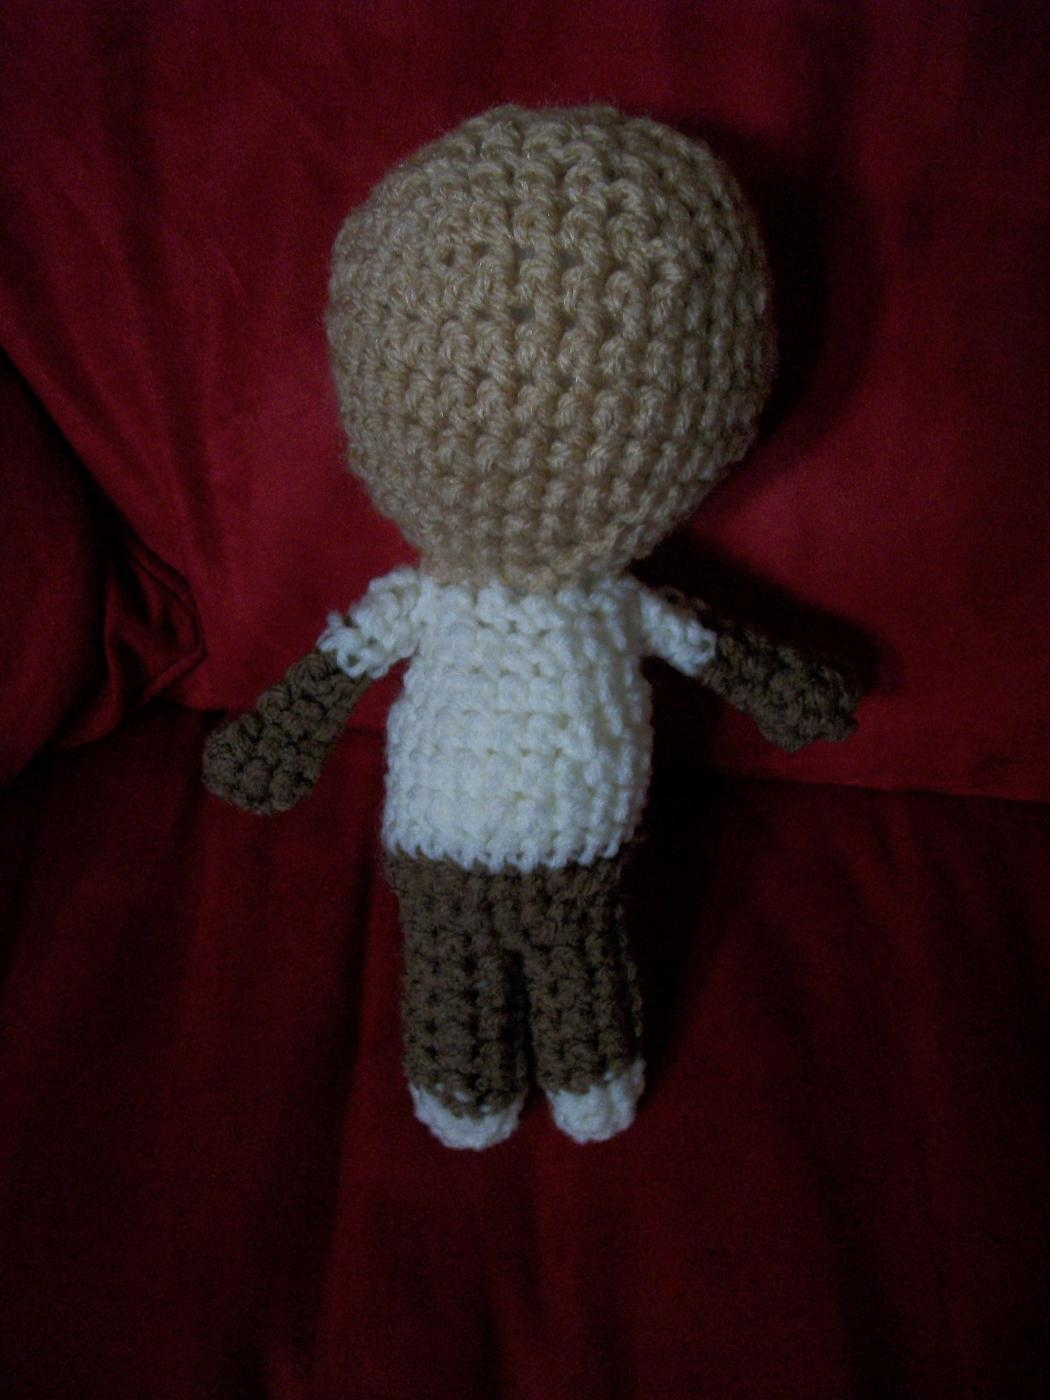 Crochet Amigurumi Doll Body : Amigurumi Basic Body Crochet Pattern - Sayjai Amigurumi ...